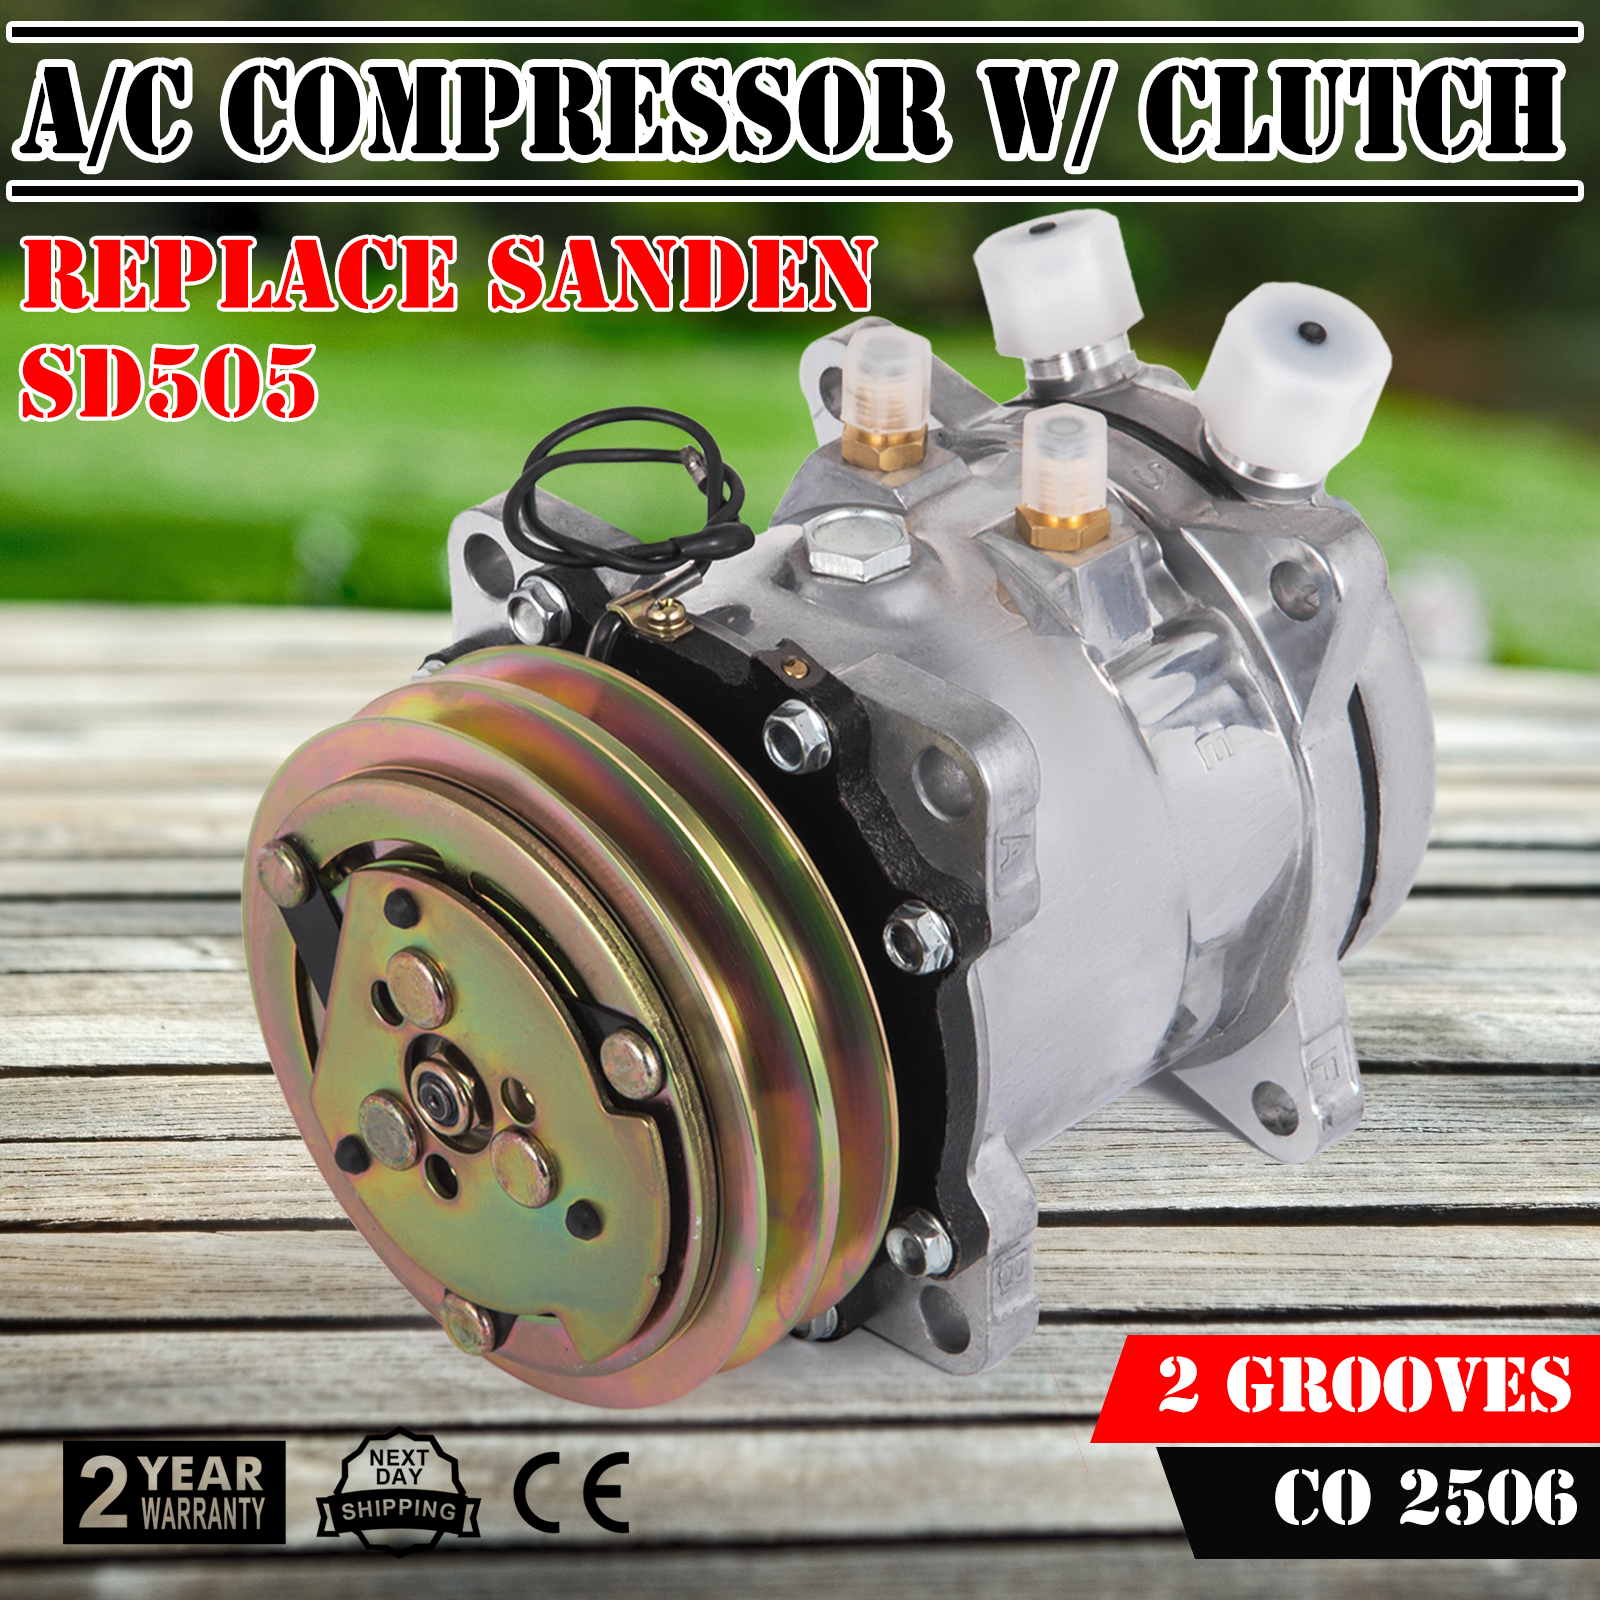 OEM Sanden AC Compressor fit 5073 24 volt SD5H09 SD505 5071 1149328 Stock